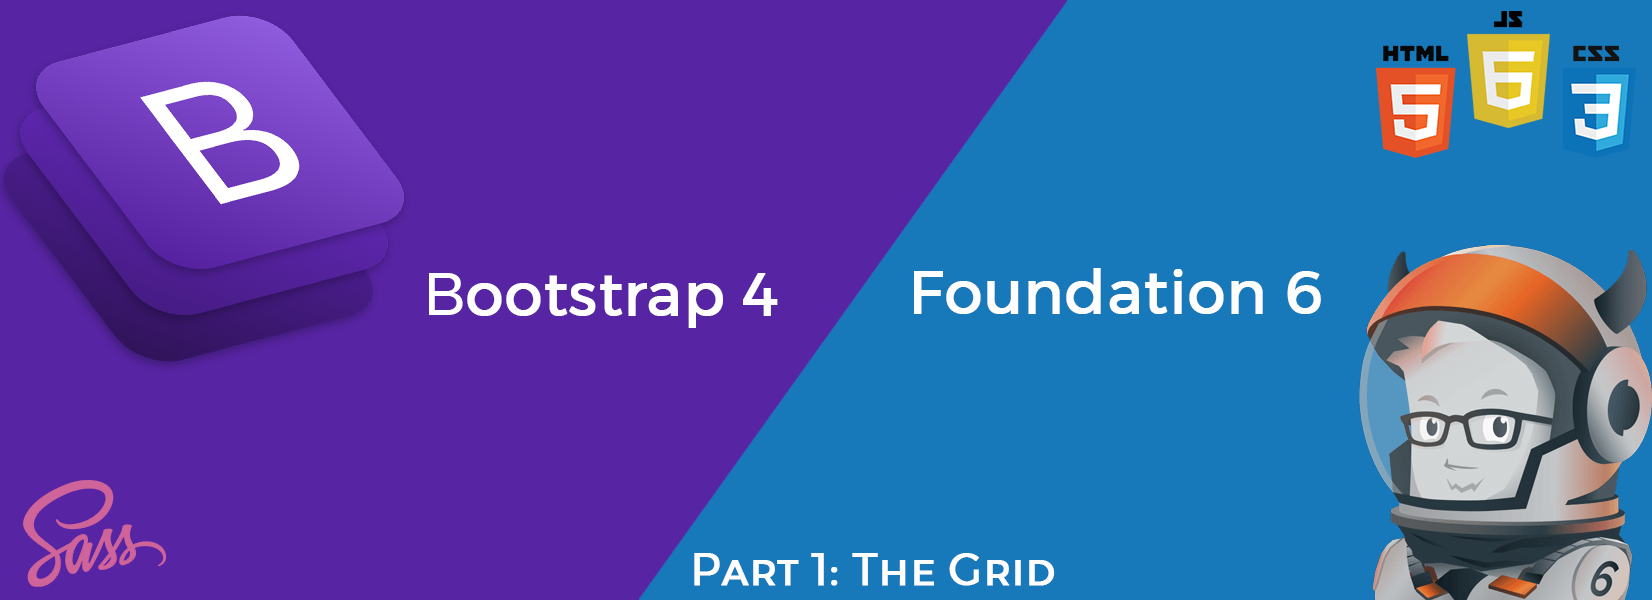 Part 1: Bootstrap 4 vs Foundation 6 4 — The Grid - codeburst